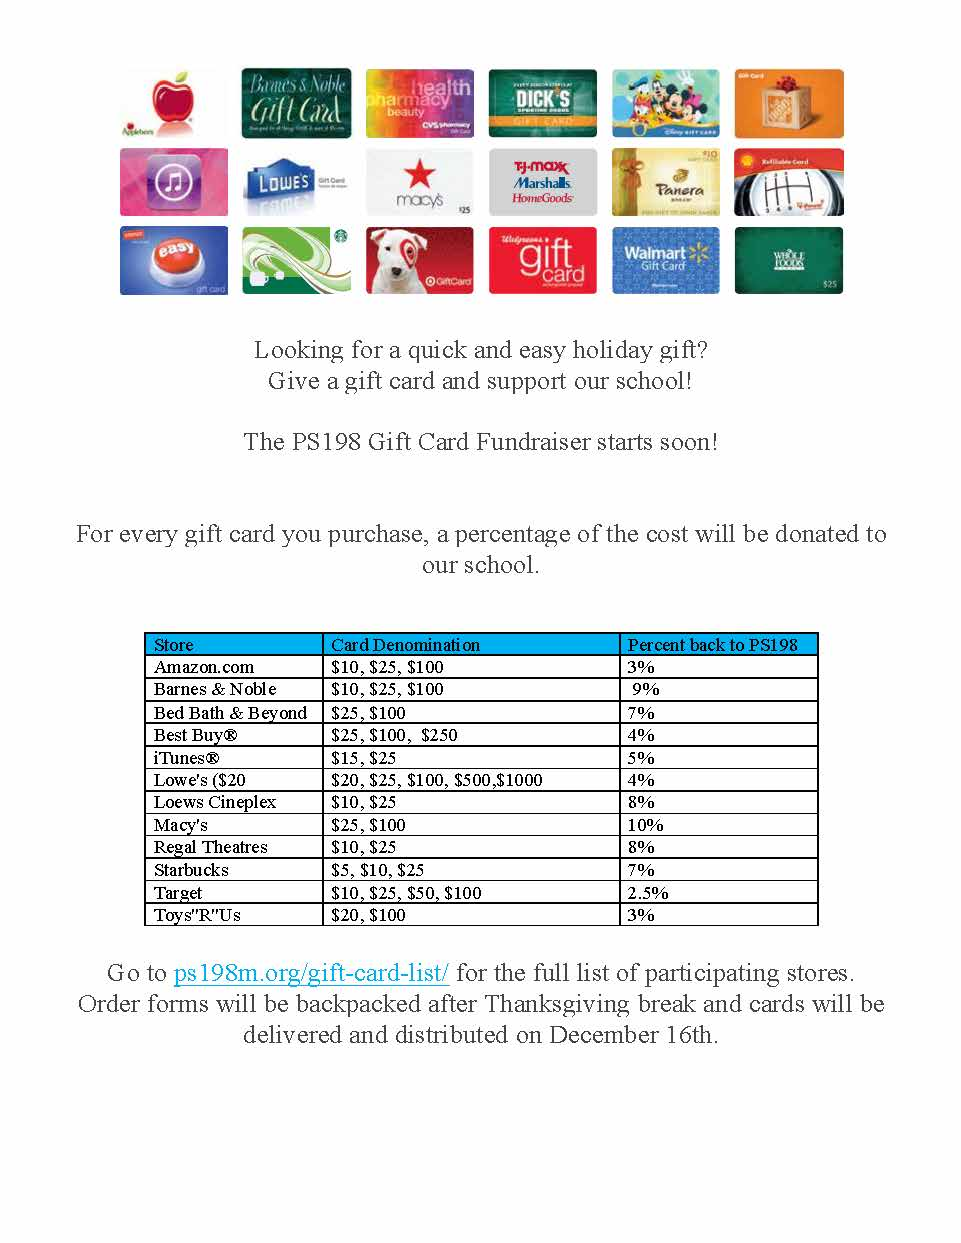 Get your GiftCards from PS198! | PS198M The Straus School